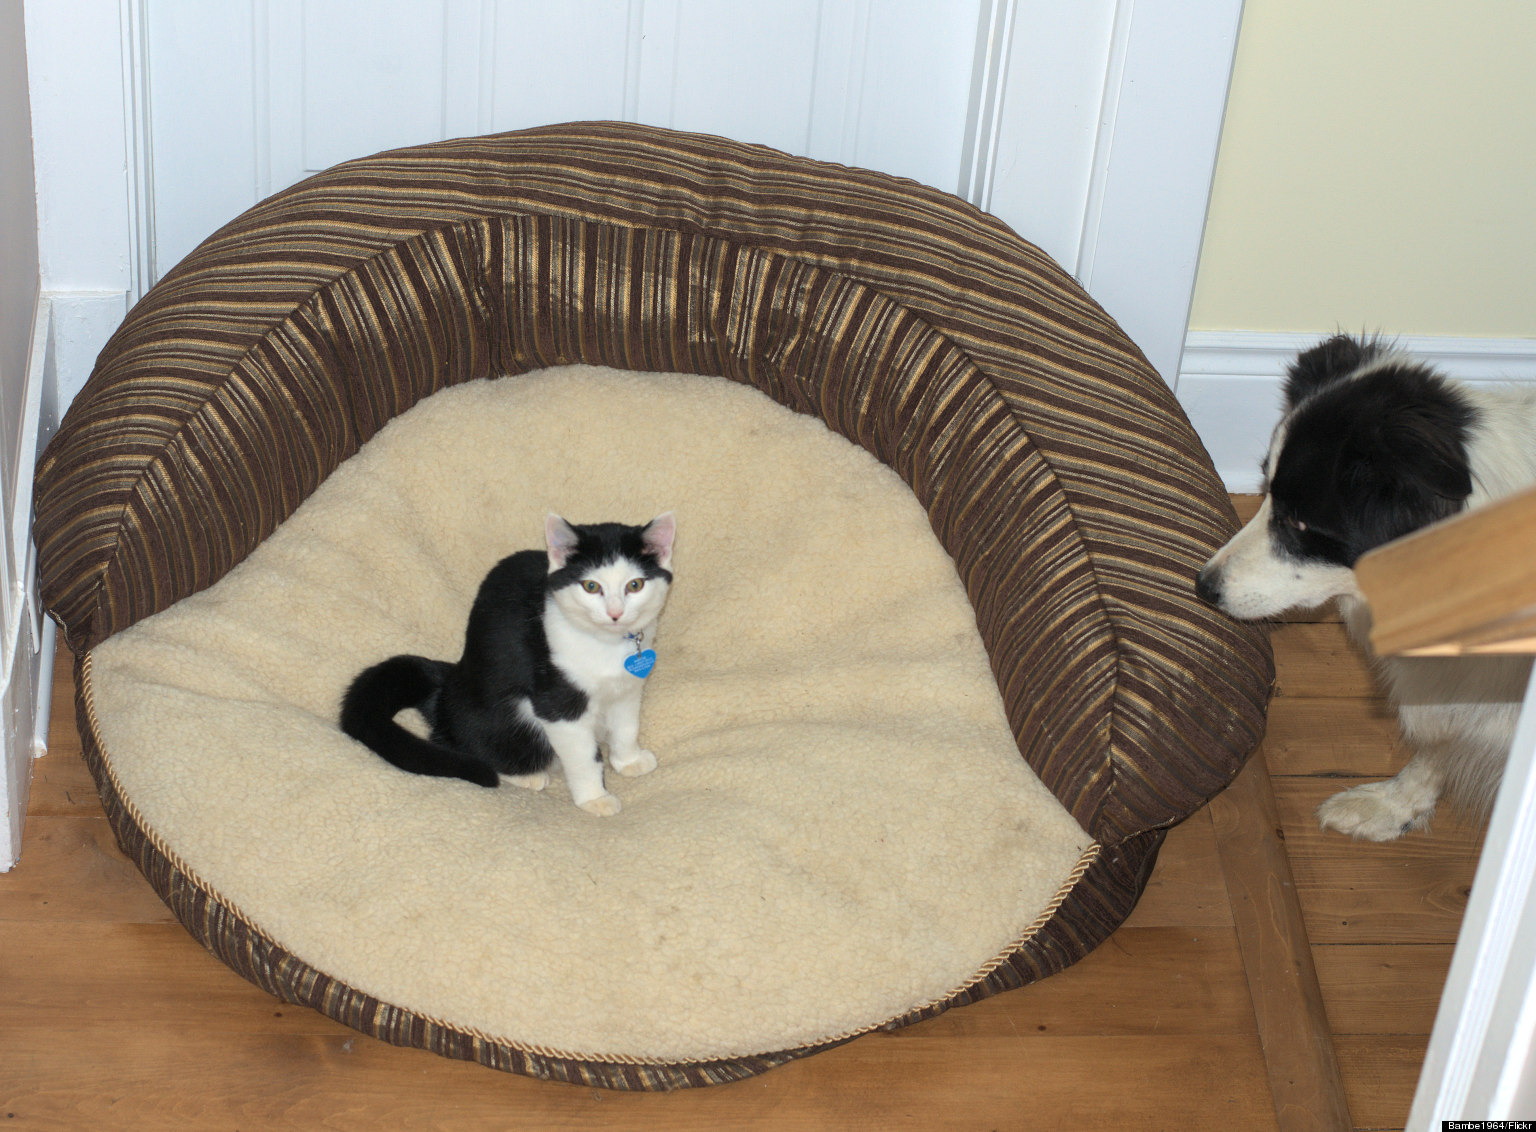 Cat steals dog's bed